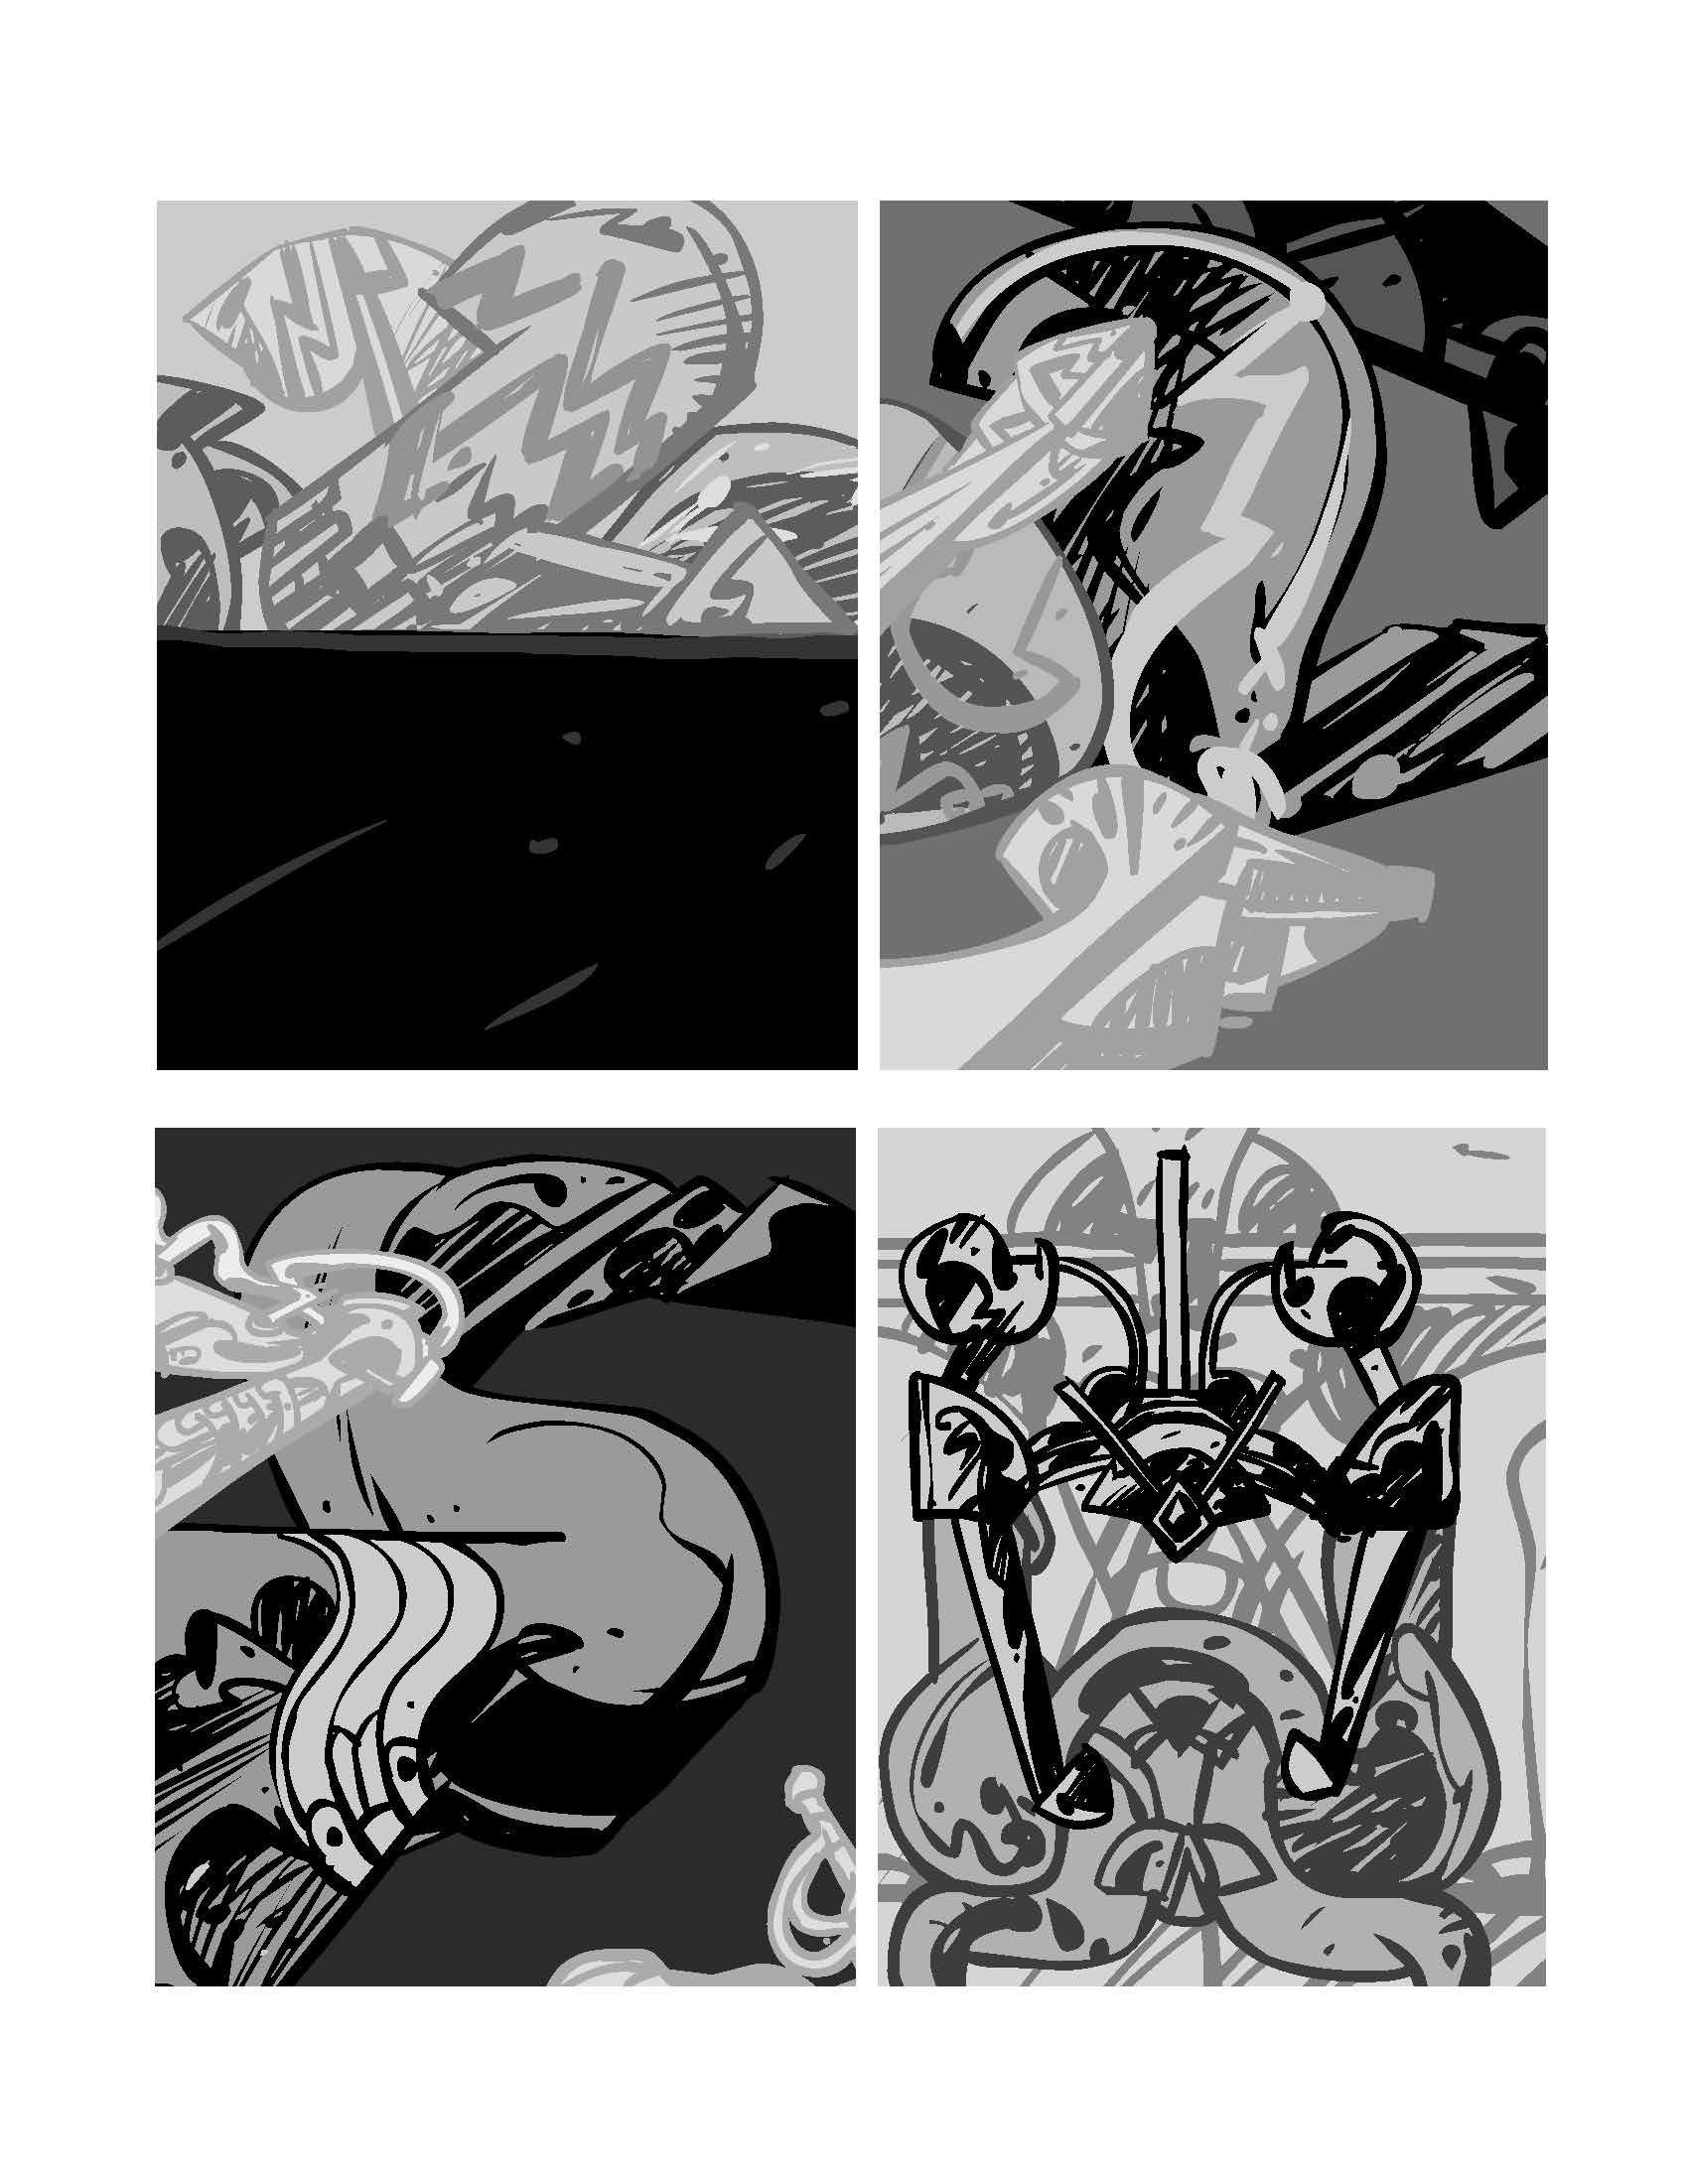 Abstract Kirby 1 pg 17